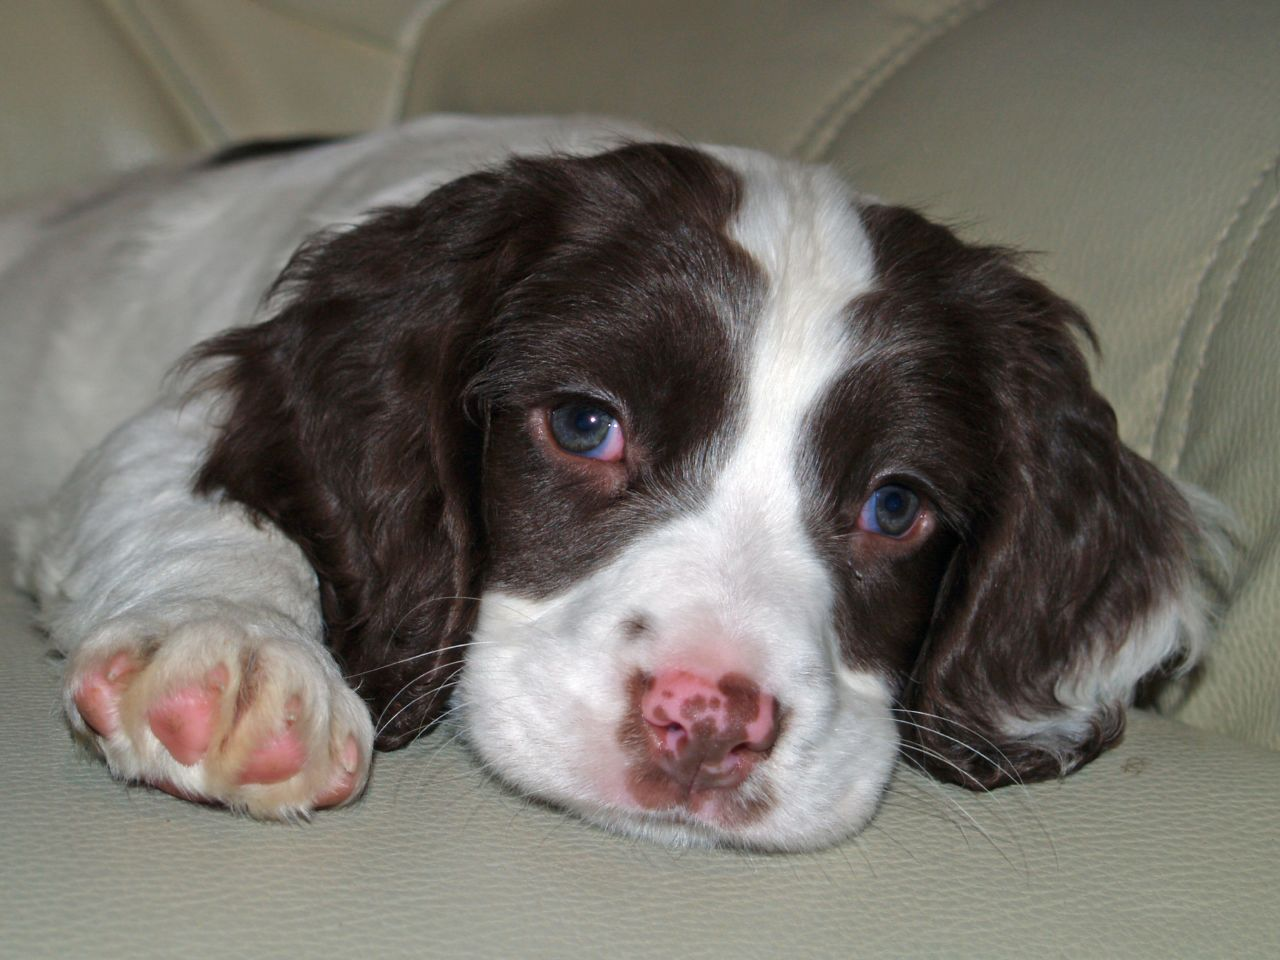 Sad English Springer Spaniel puppy wallpaper